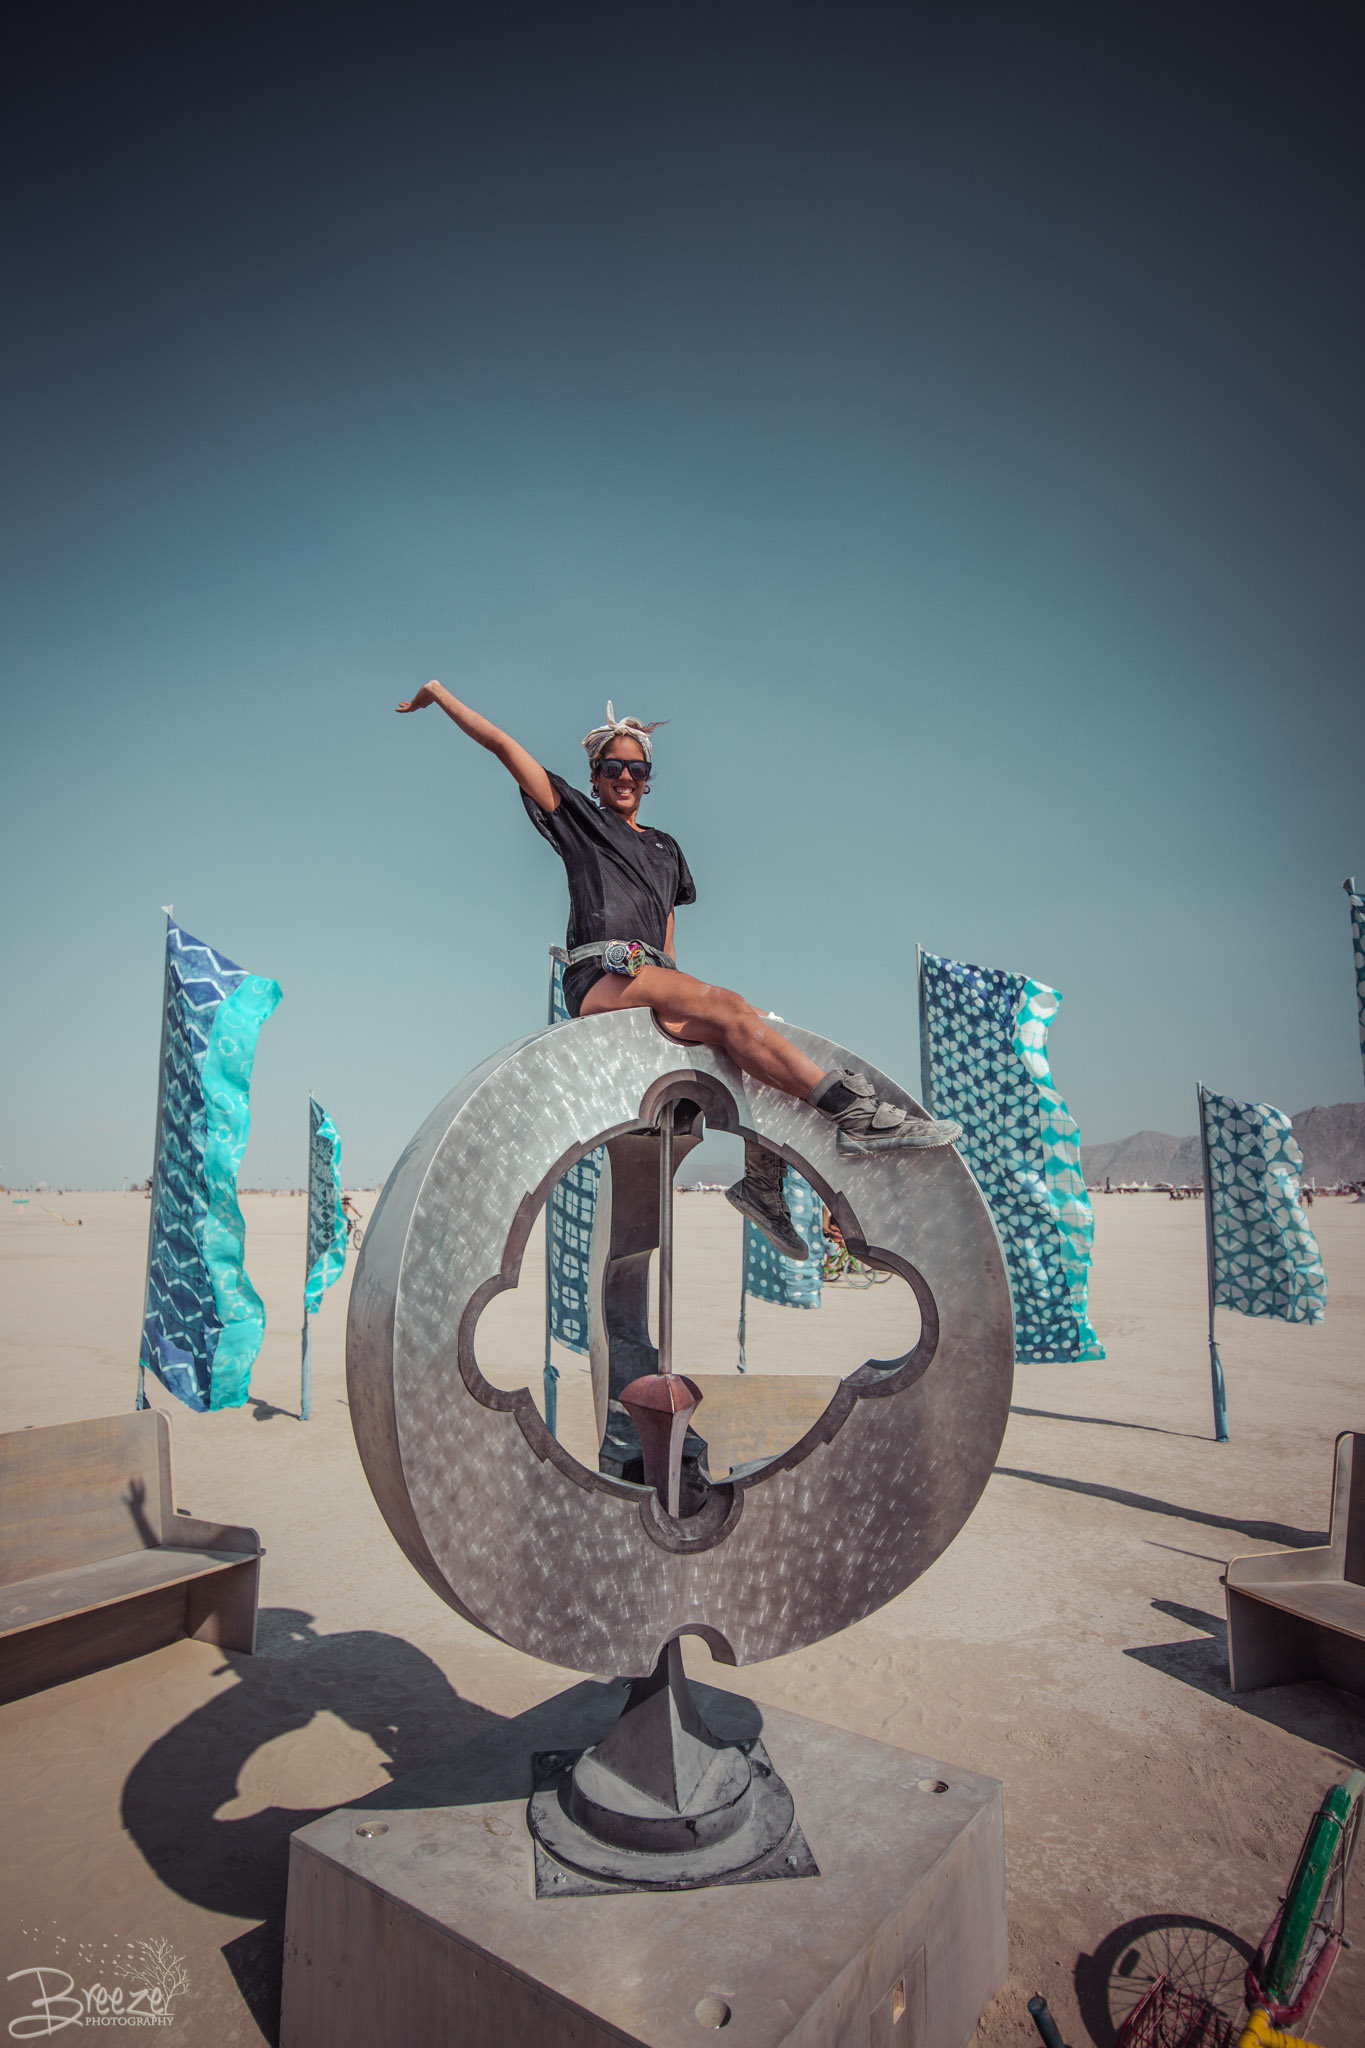 Brie'Ana Breeze Photography & Media - Burning Man 2018-3125.jpg